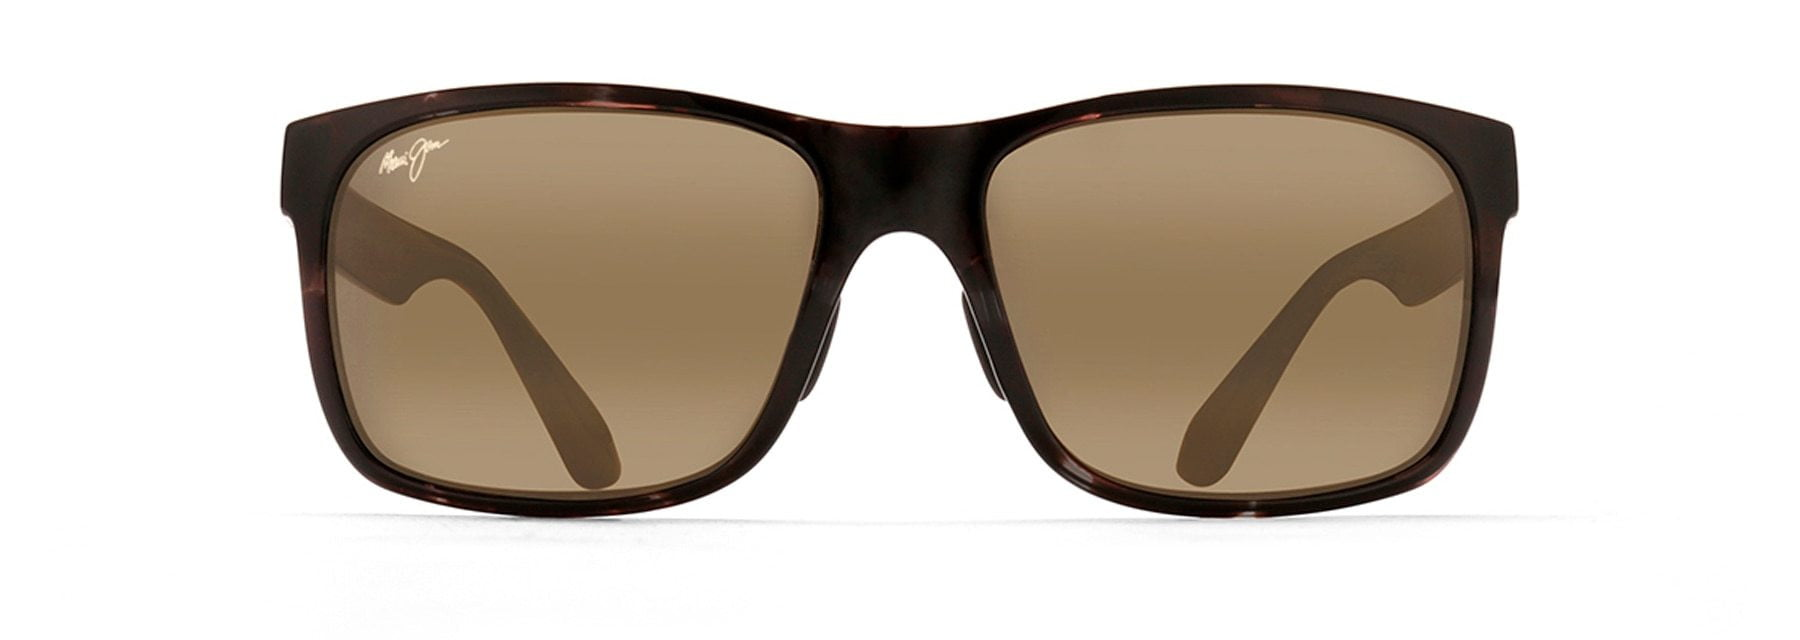 MyMaui Red Sands MM432-009 Sunglasses